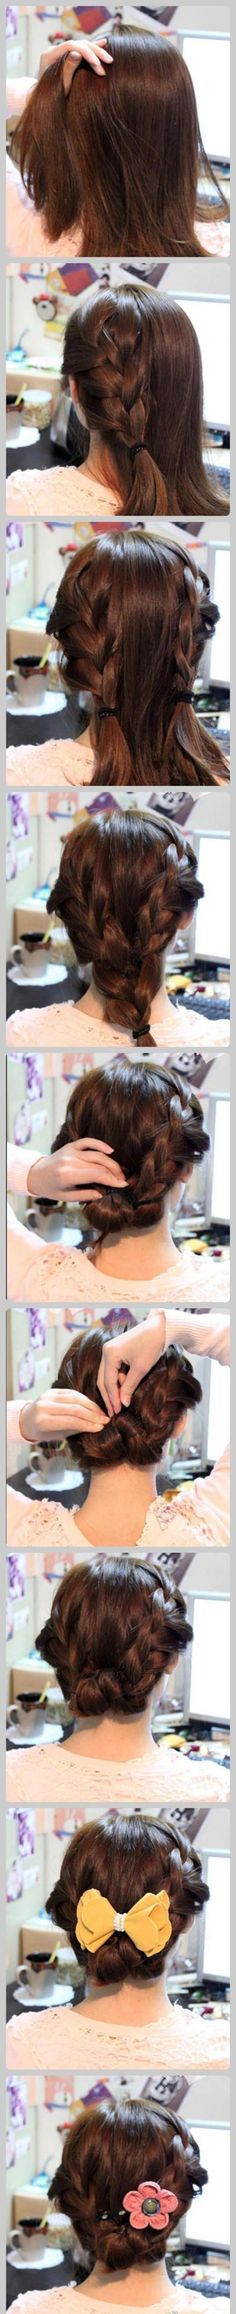 I did this yesterday. It's uber easy (even for a hair moron like me!) and it looks lovely :-)